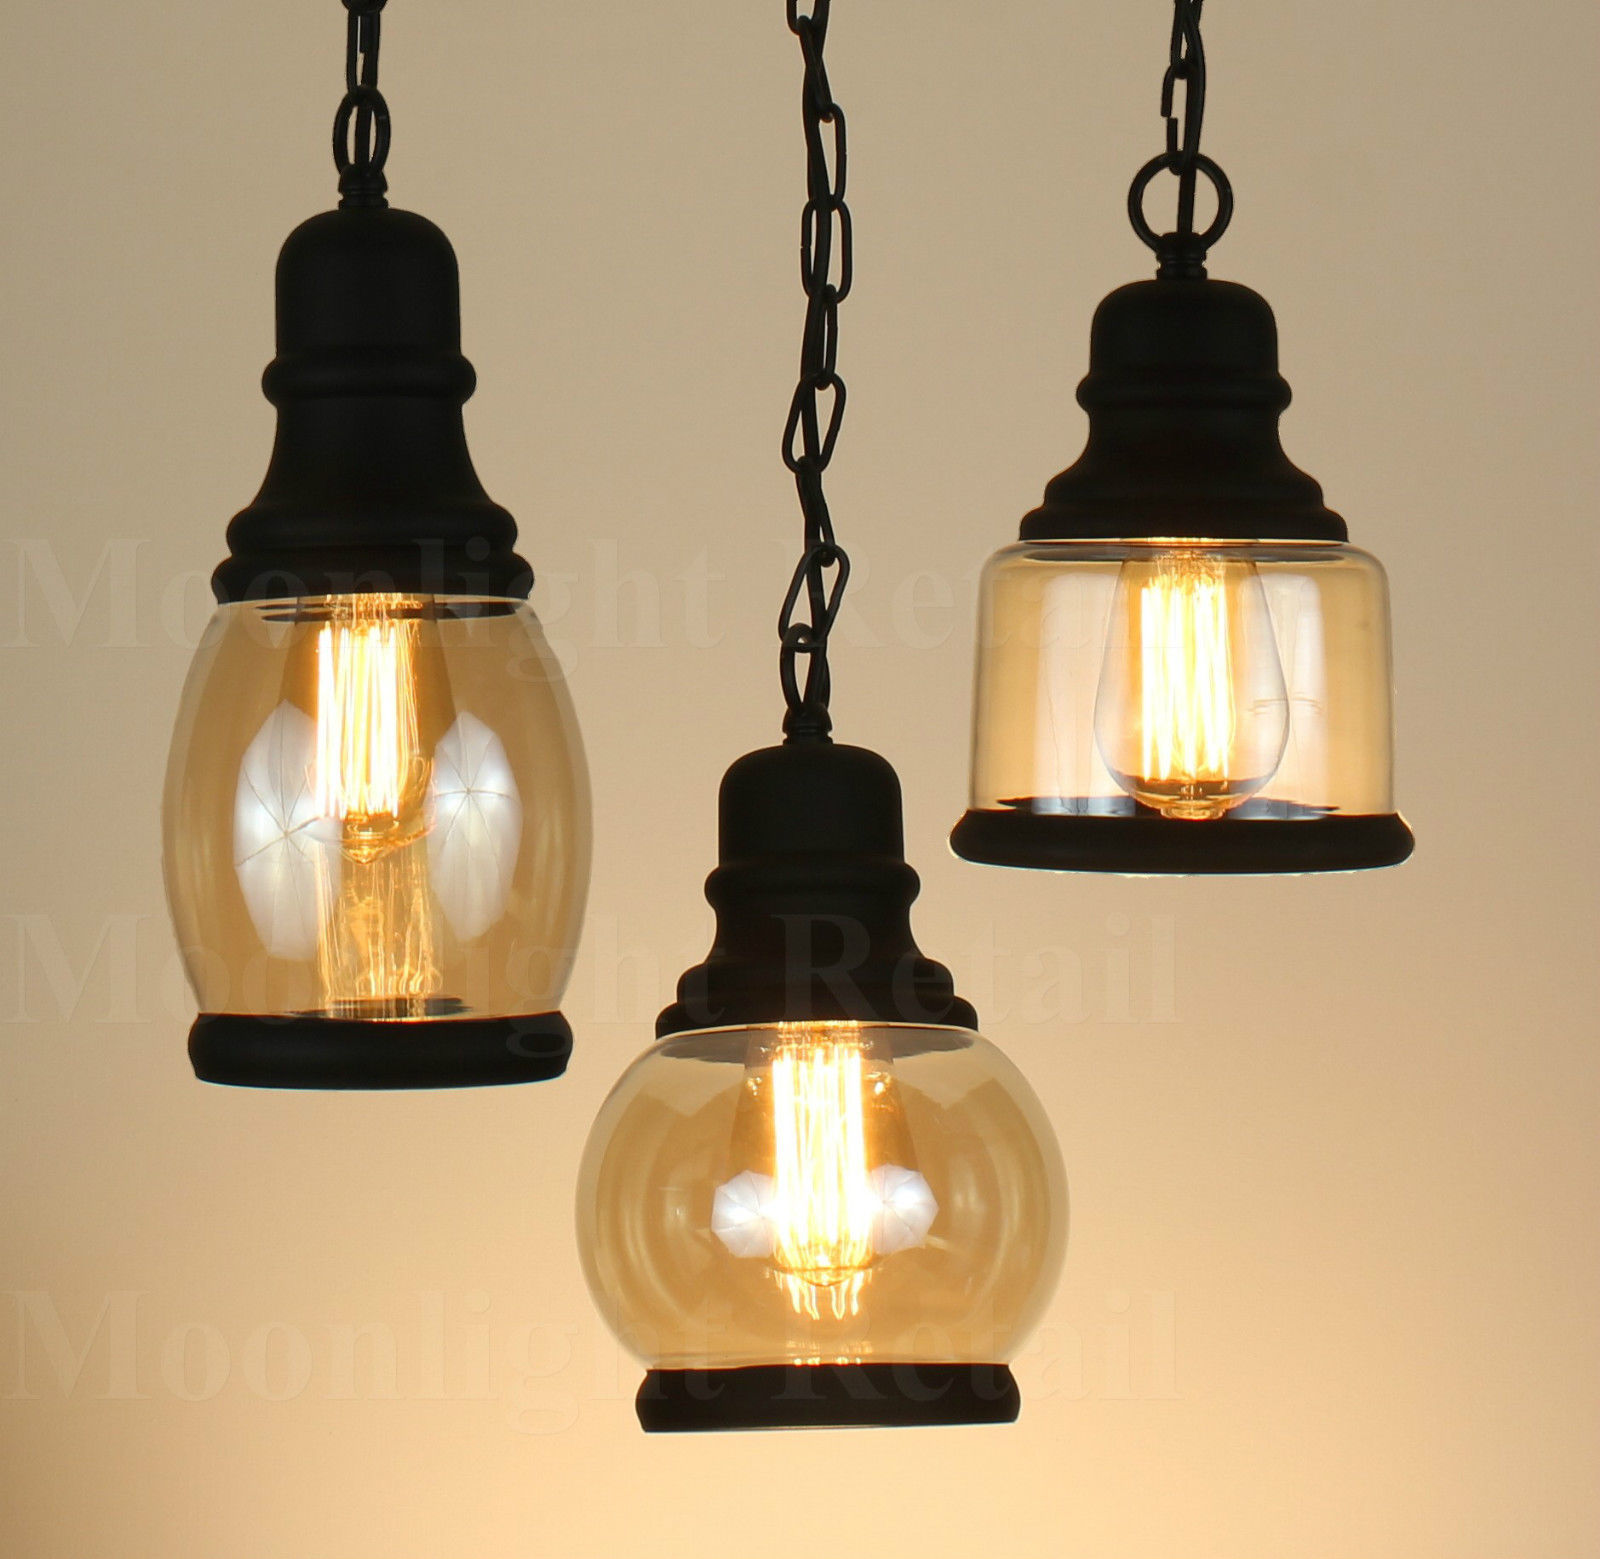 Industrial Vintage New Vintage Industrial Retro Loft Smoked Glass Shade Pendant Light With Chain